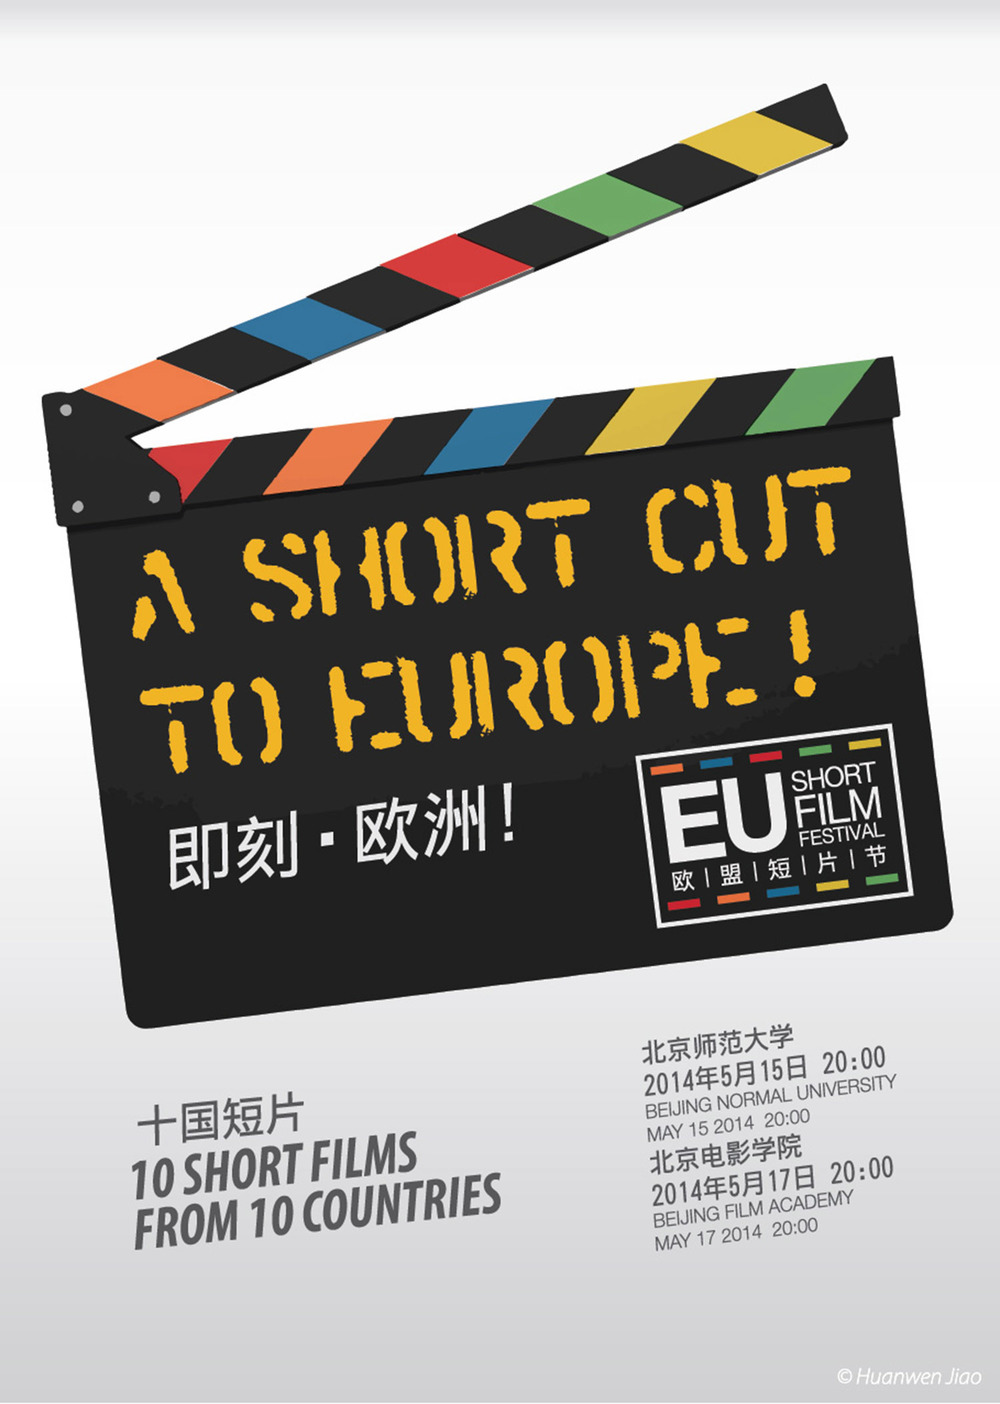 EU_short_film_festival_proposal-21.jpg